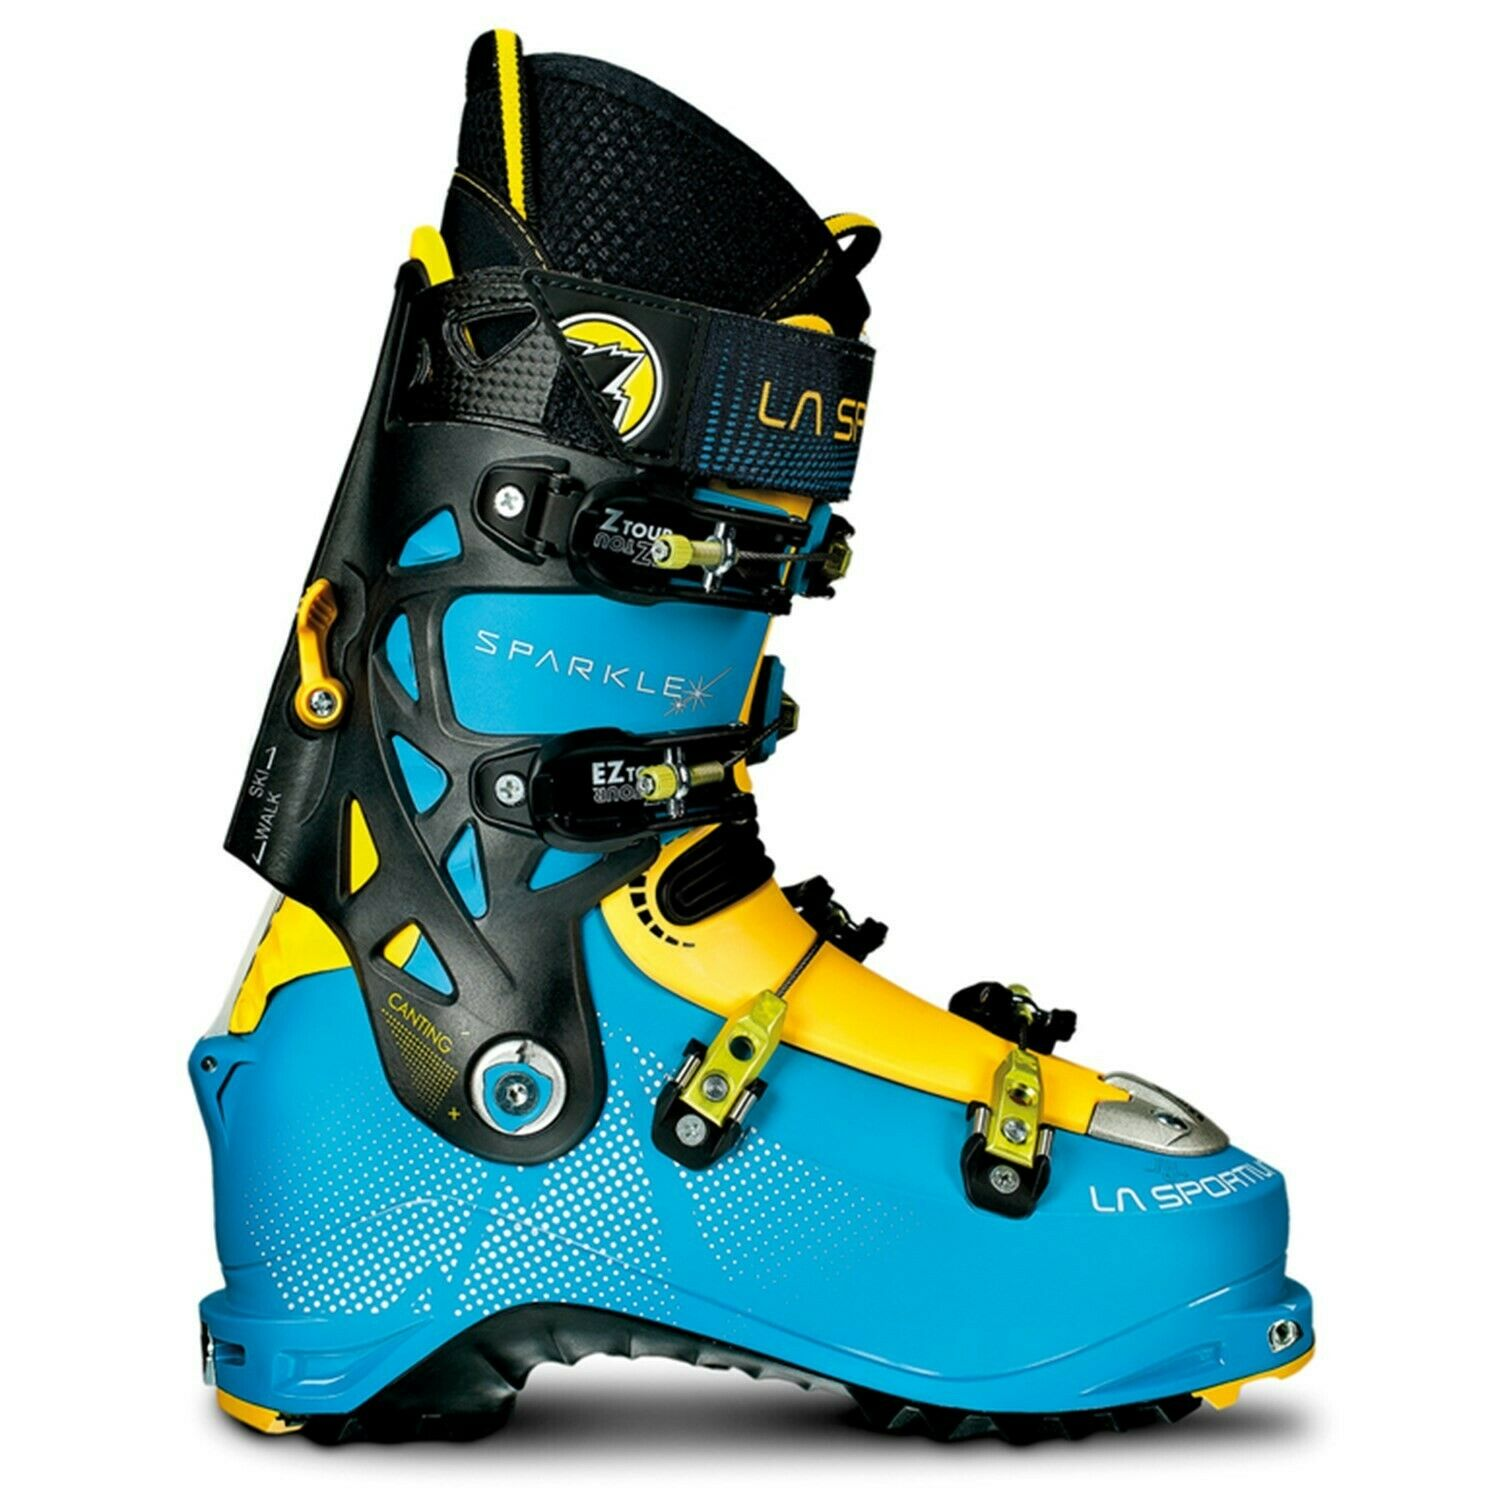 NEW La  Sportiva Sparkle Alpine Touring Women's Ski Boots, Size 23.5, MSRP  649  big discount prices